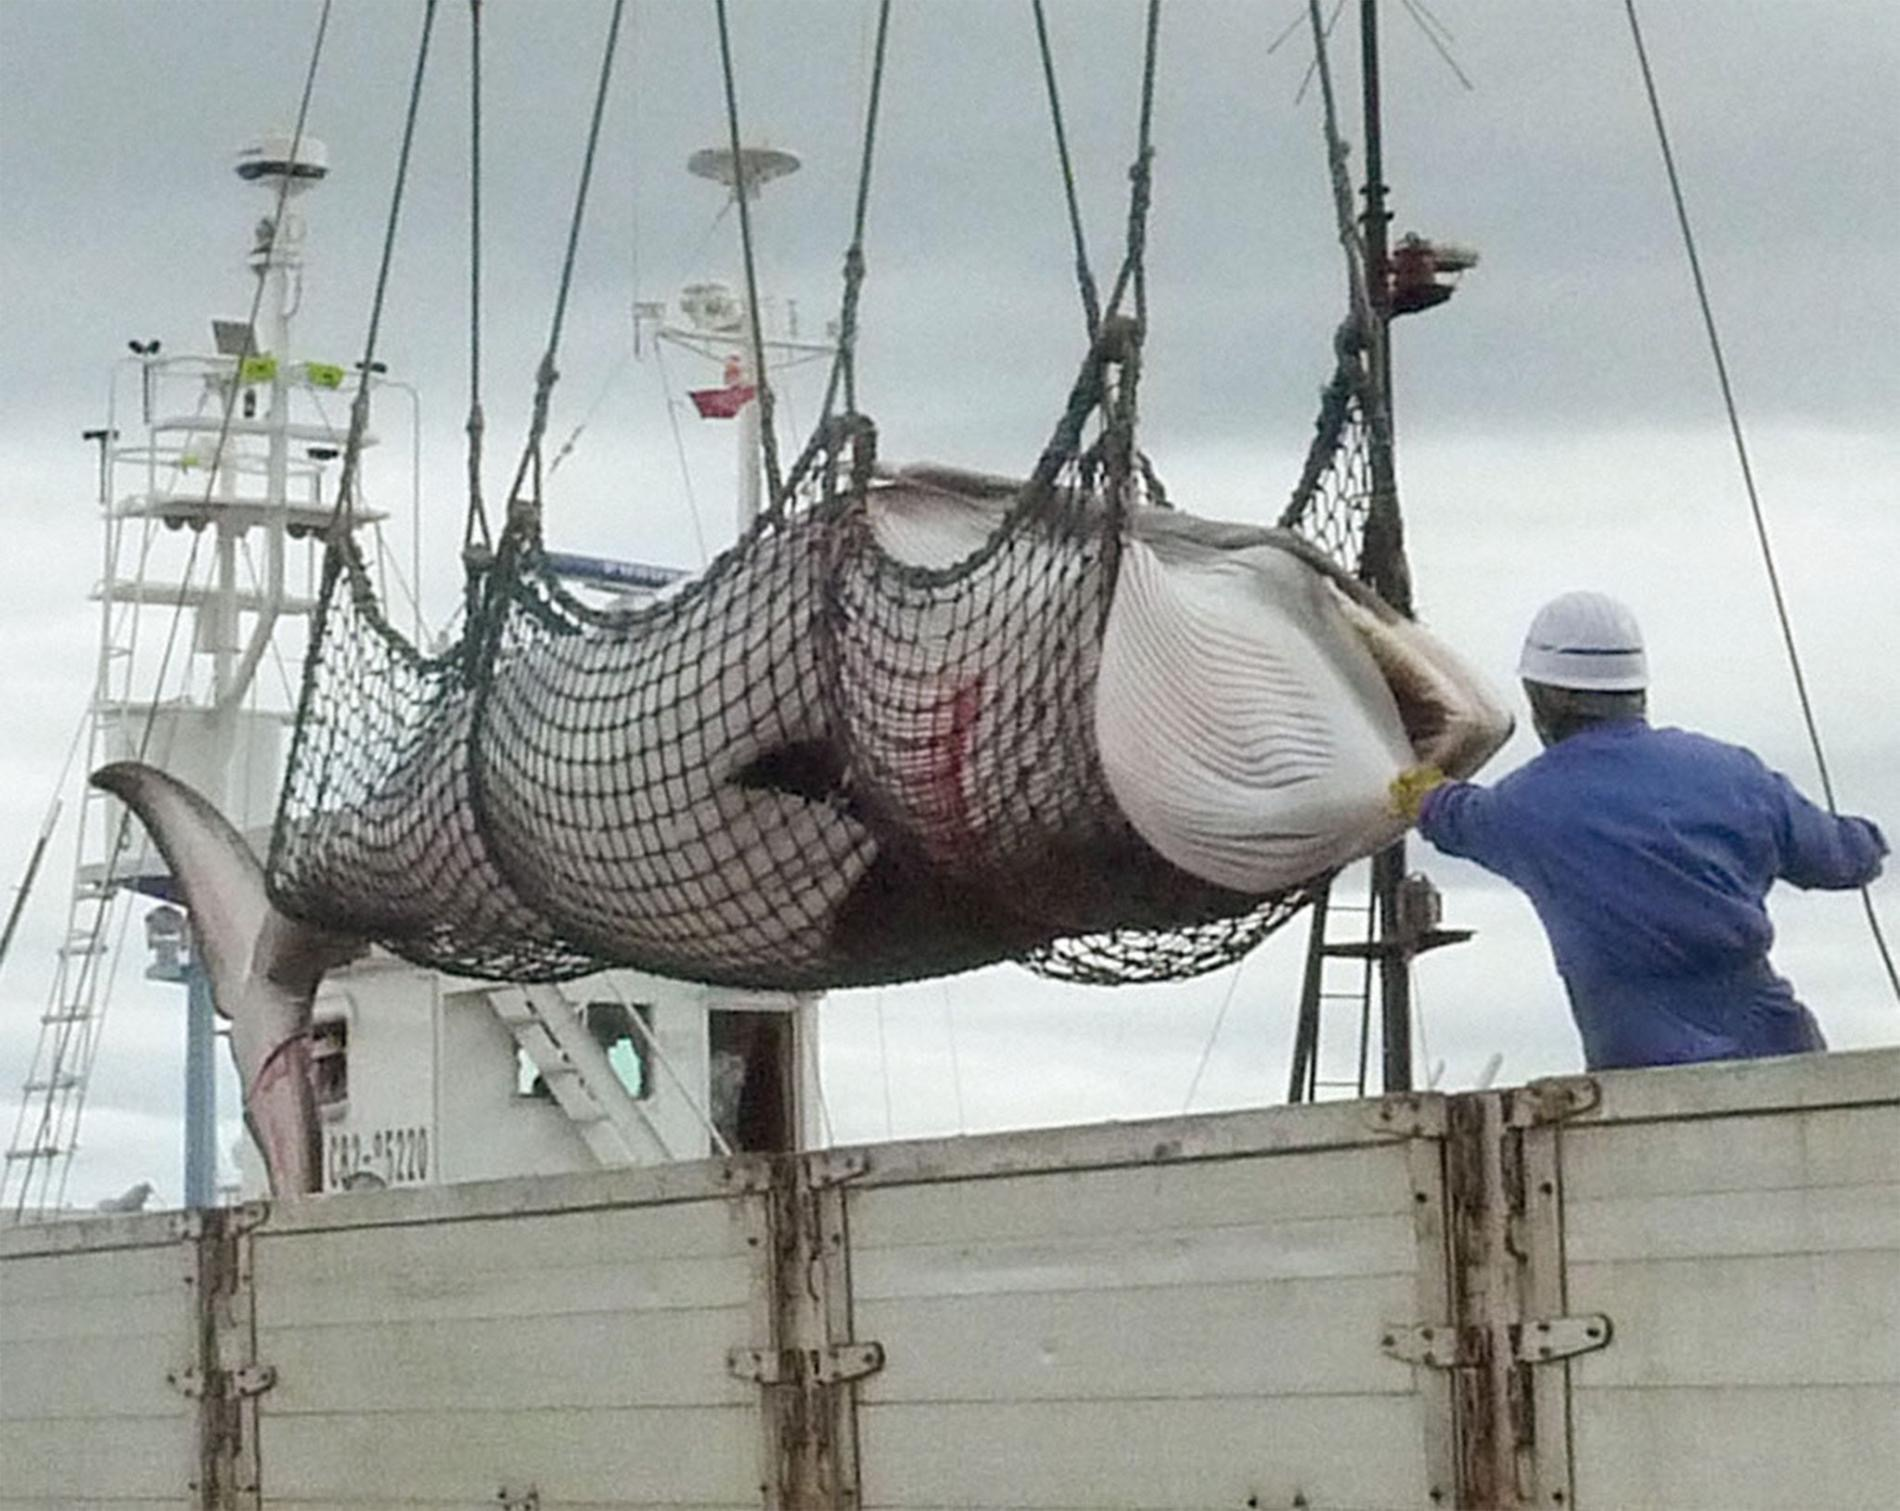 Minke whale killed - from National Geographic